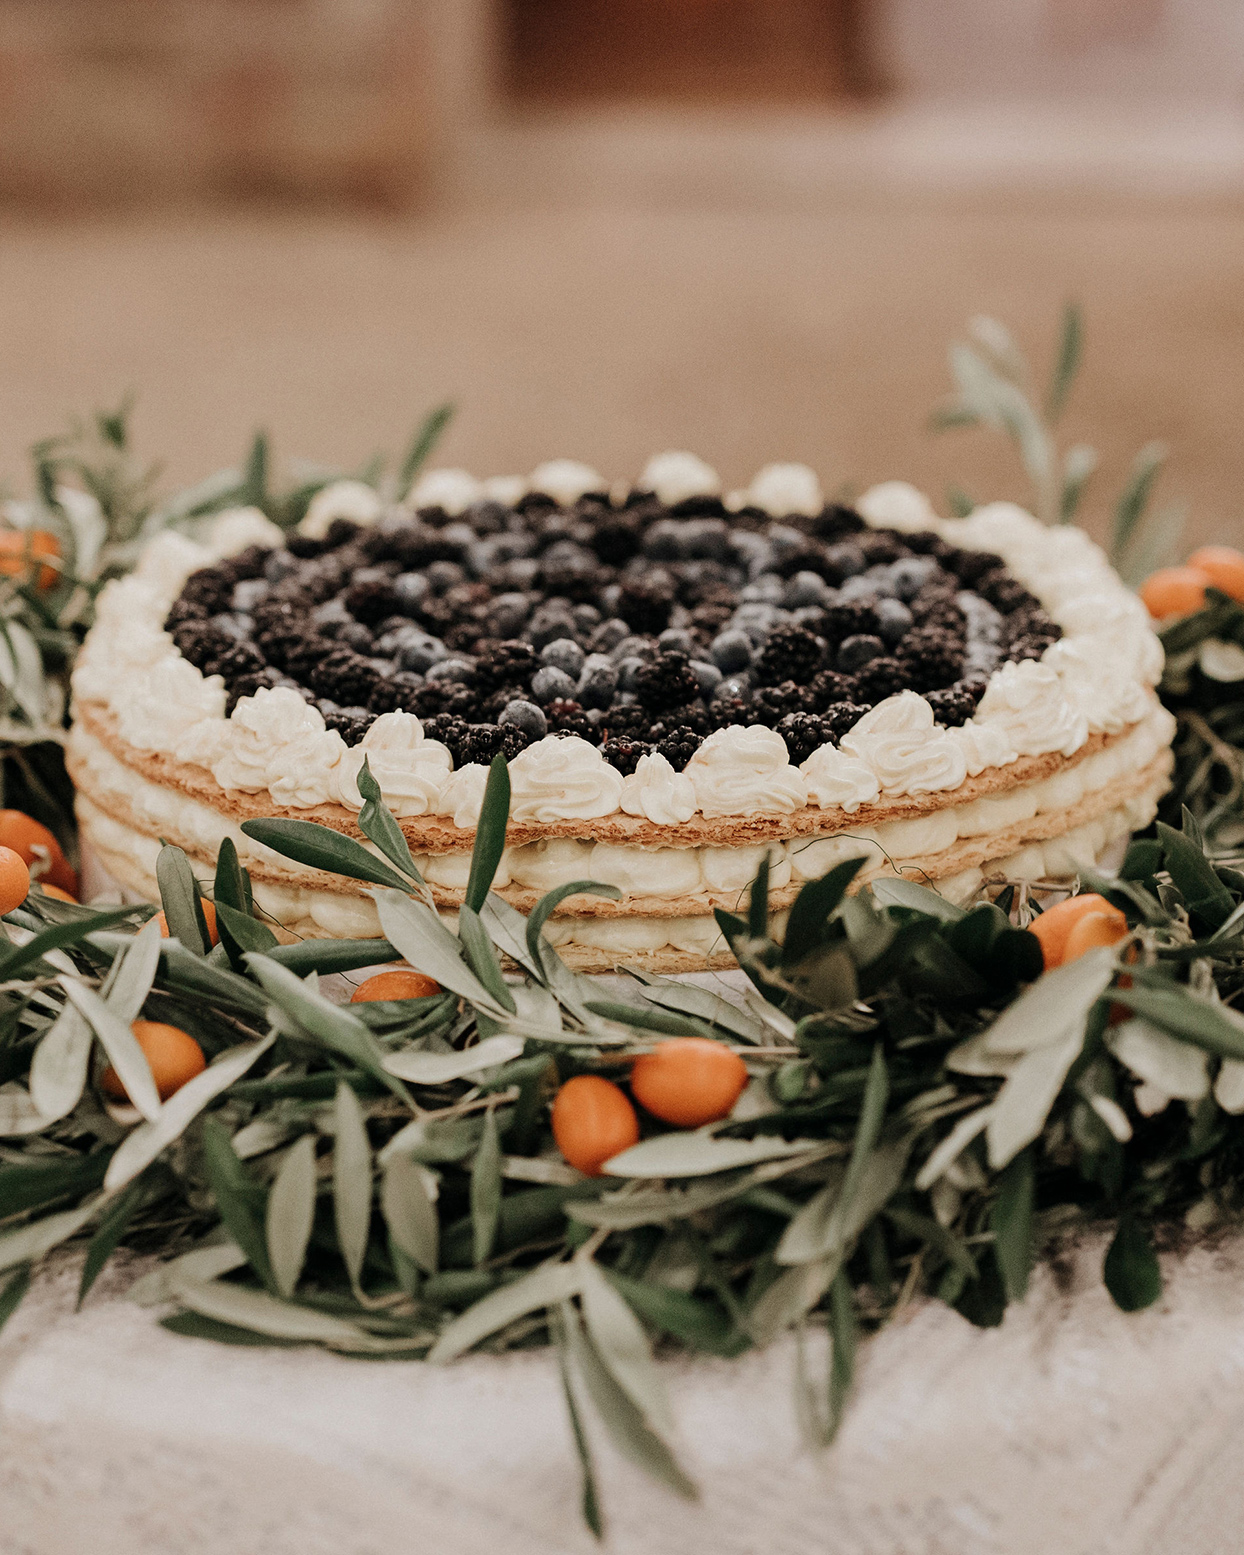 jaclyn antonio wedding layer cake with berries